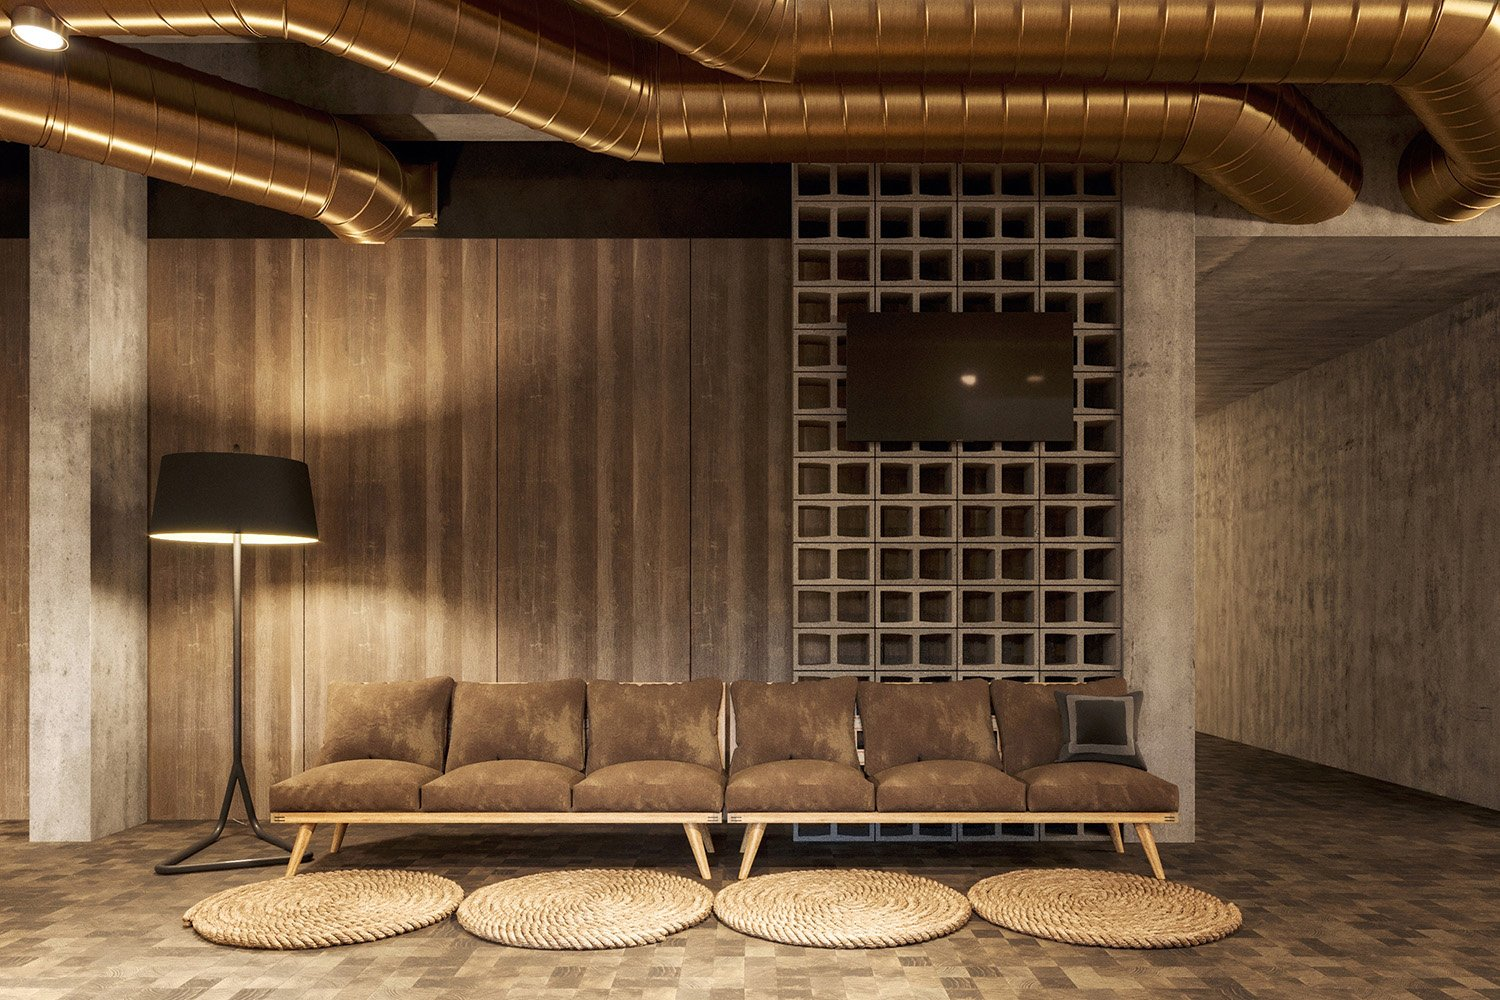 enota maestoso hotel & spa 14 Studio Spacer (visualisations)}